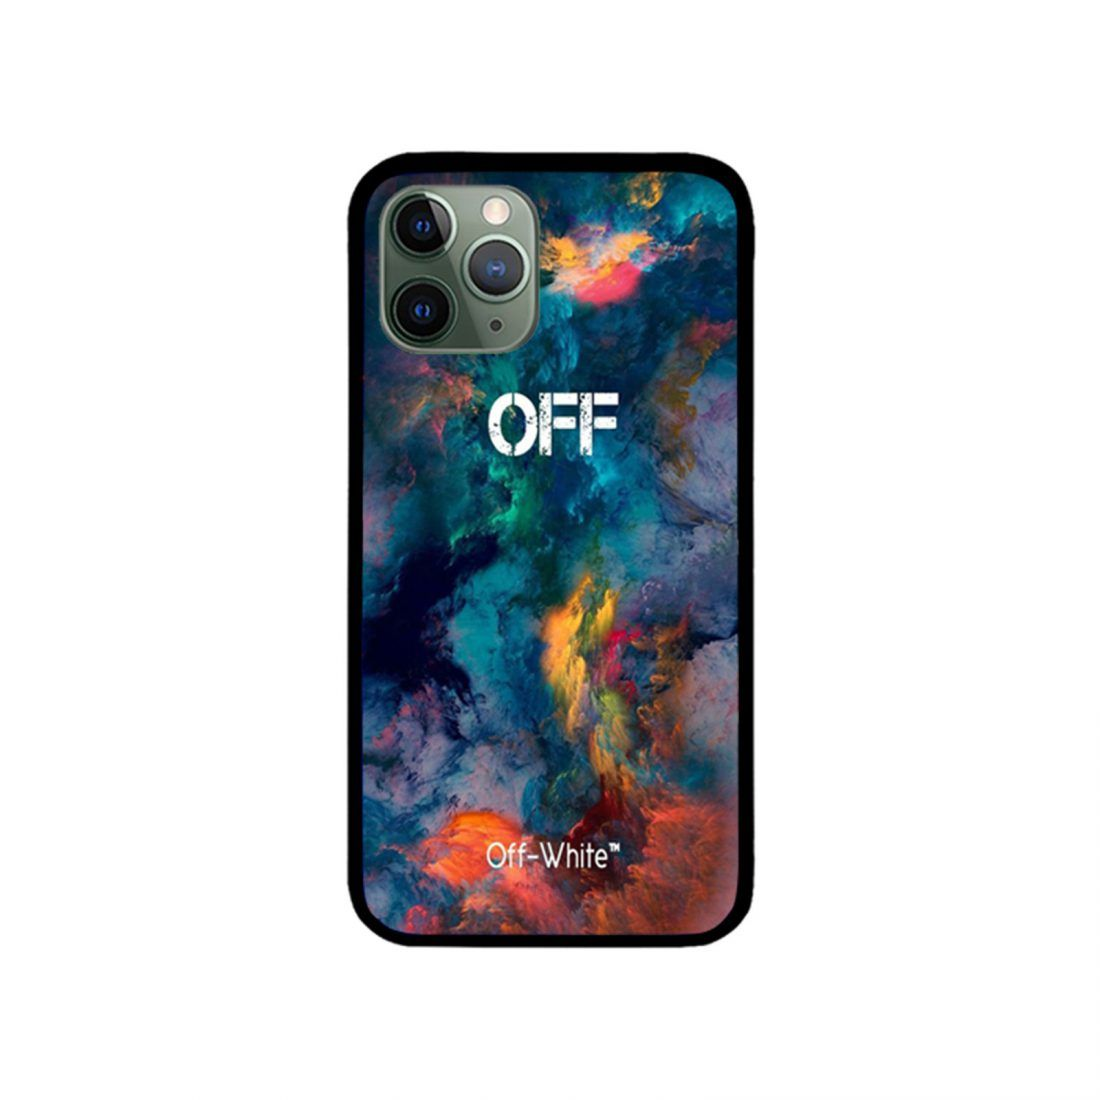 Galaxy smoke color off white iphone case 11xxsxr876